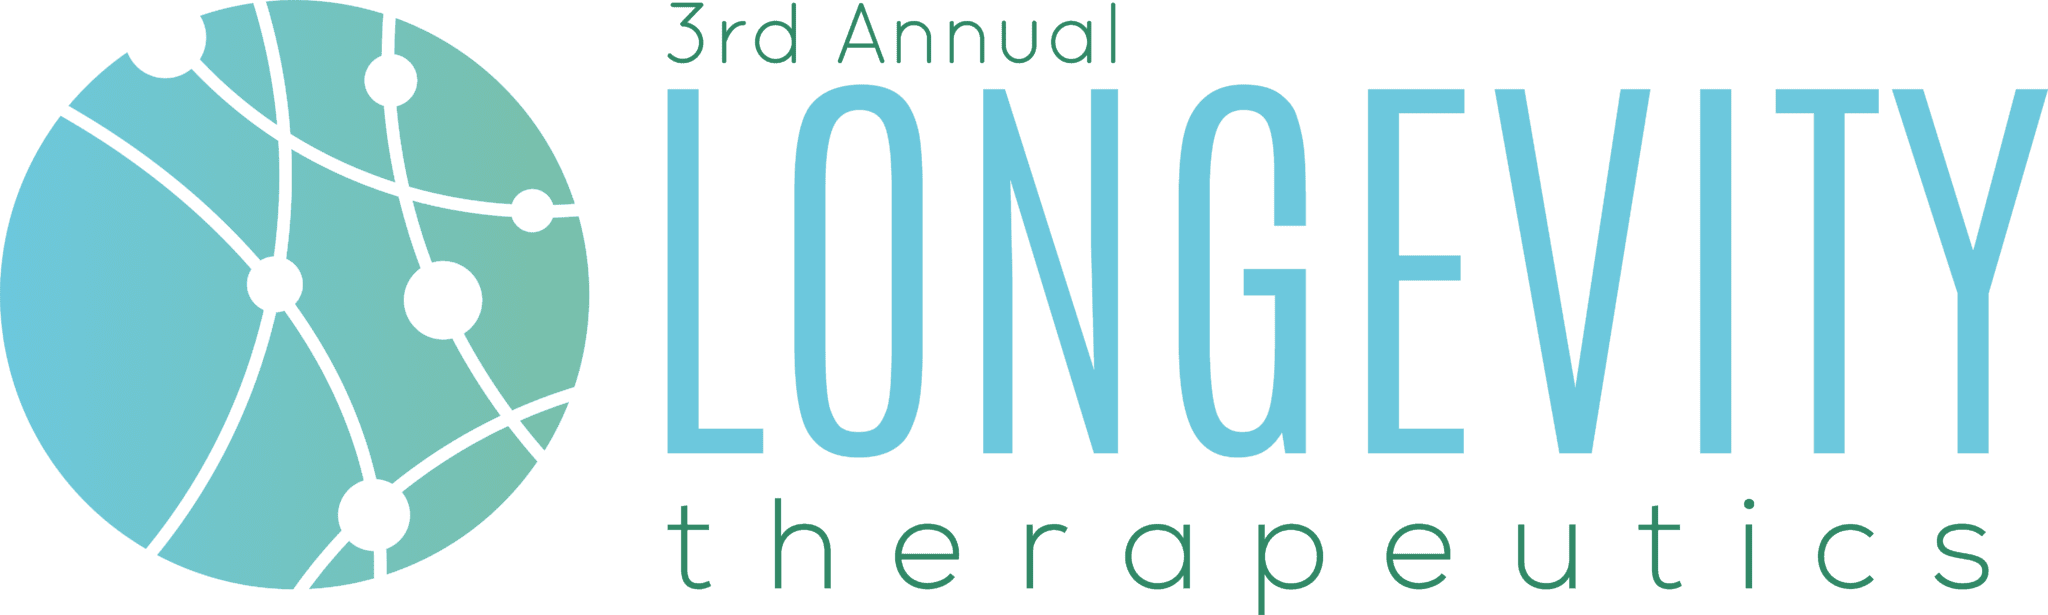 HW190912 Longevity_Therapeutics_2021 logo